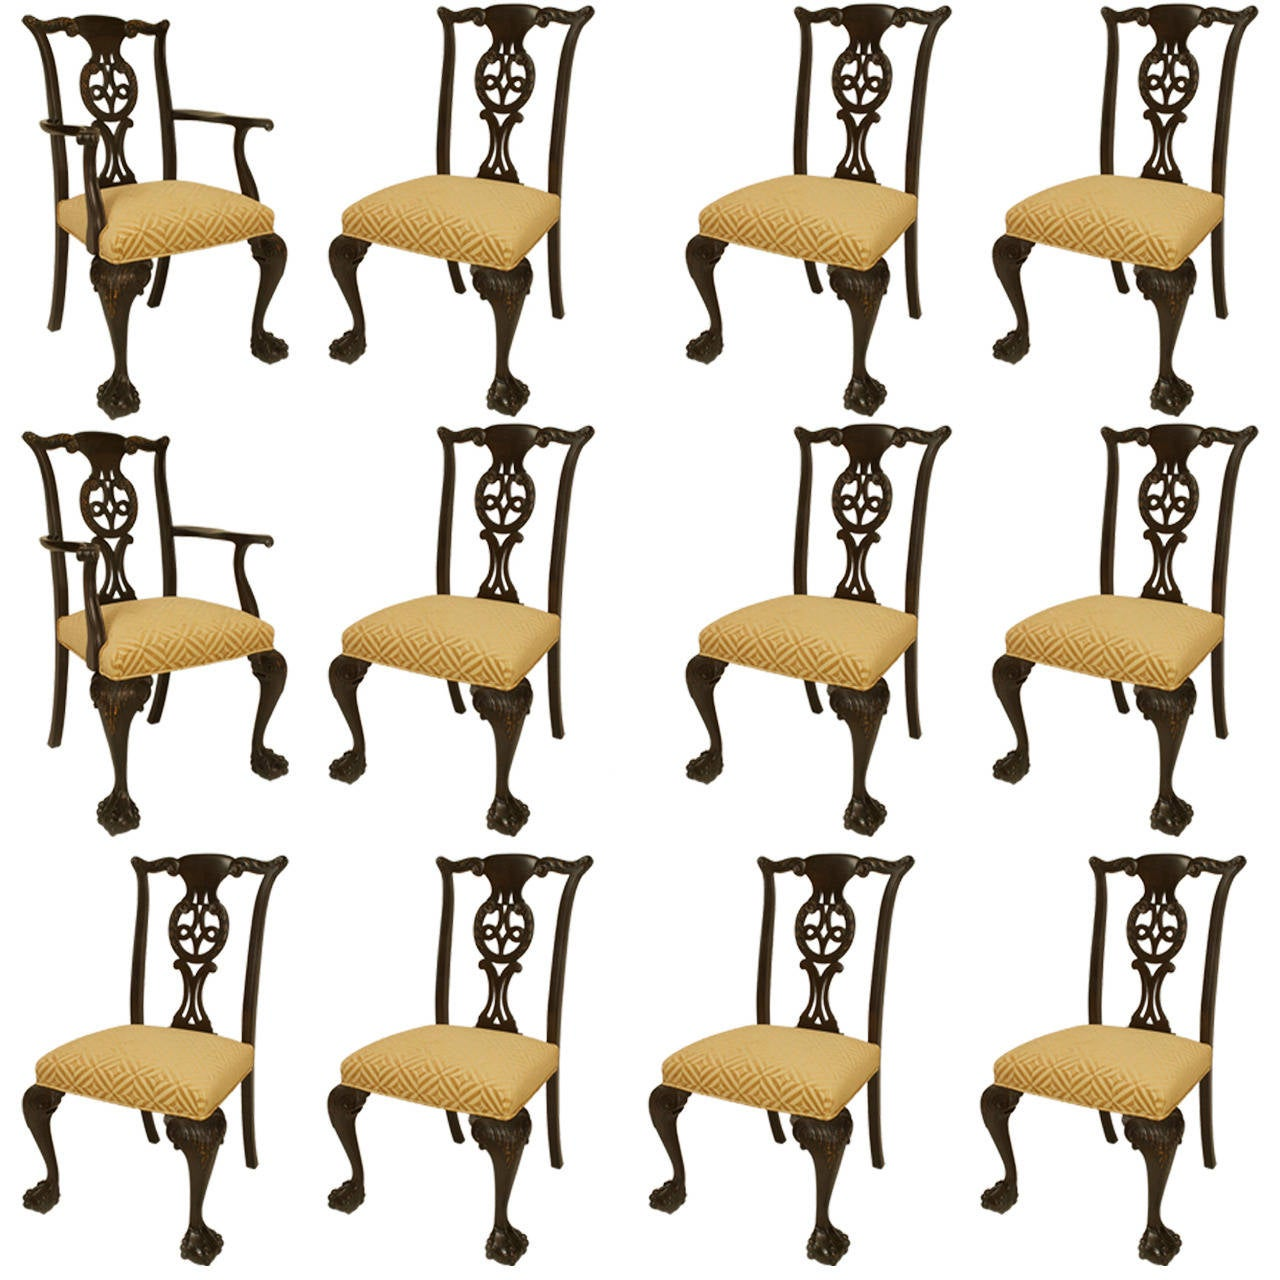 A Lovely Set of 12 Irish George II Style Chairs